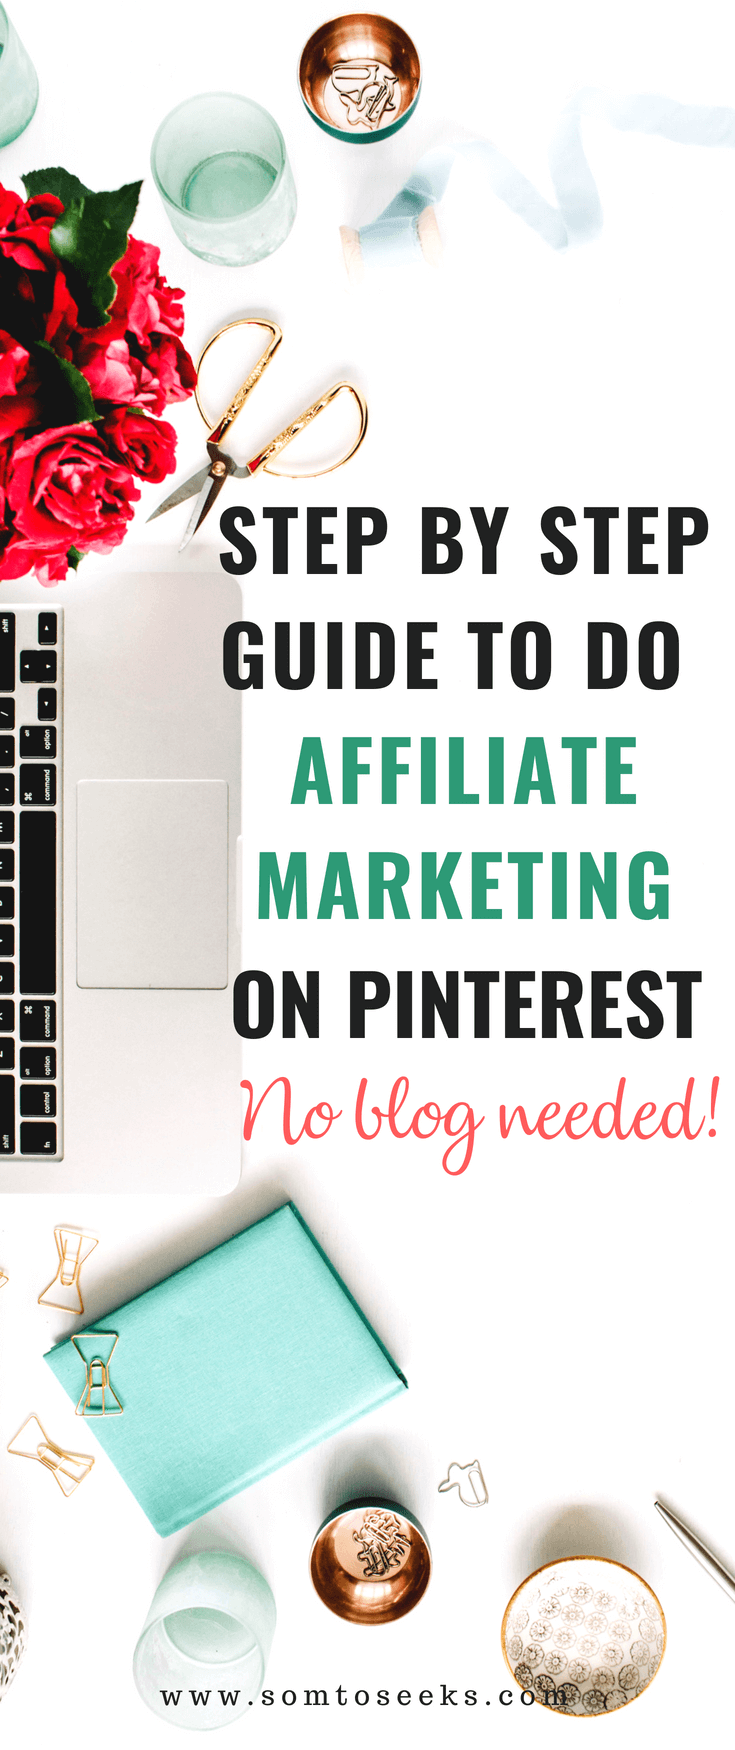 Step By Step Guide To Do Affiliate Marketing on Pinterest - No Blog Needed